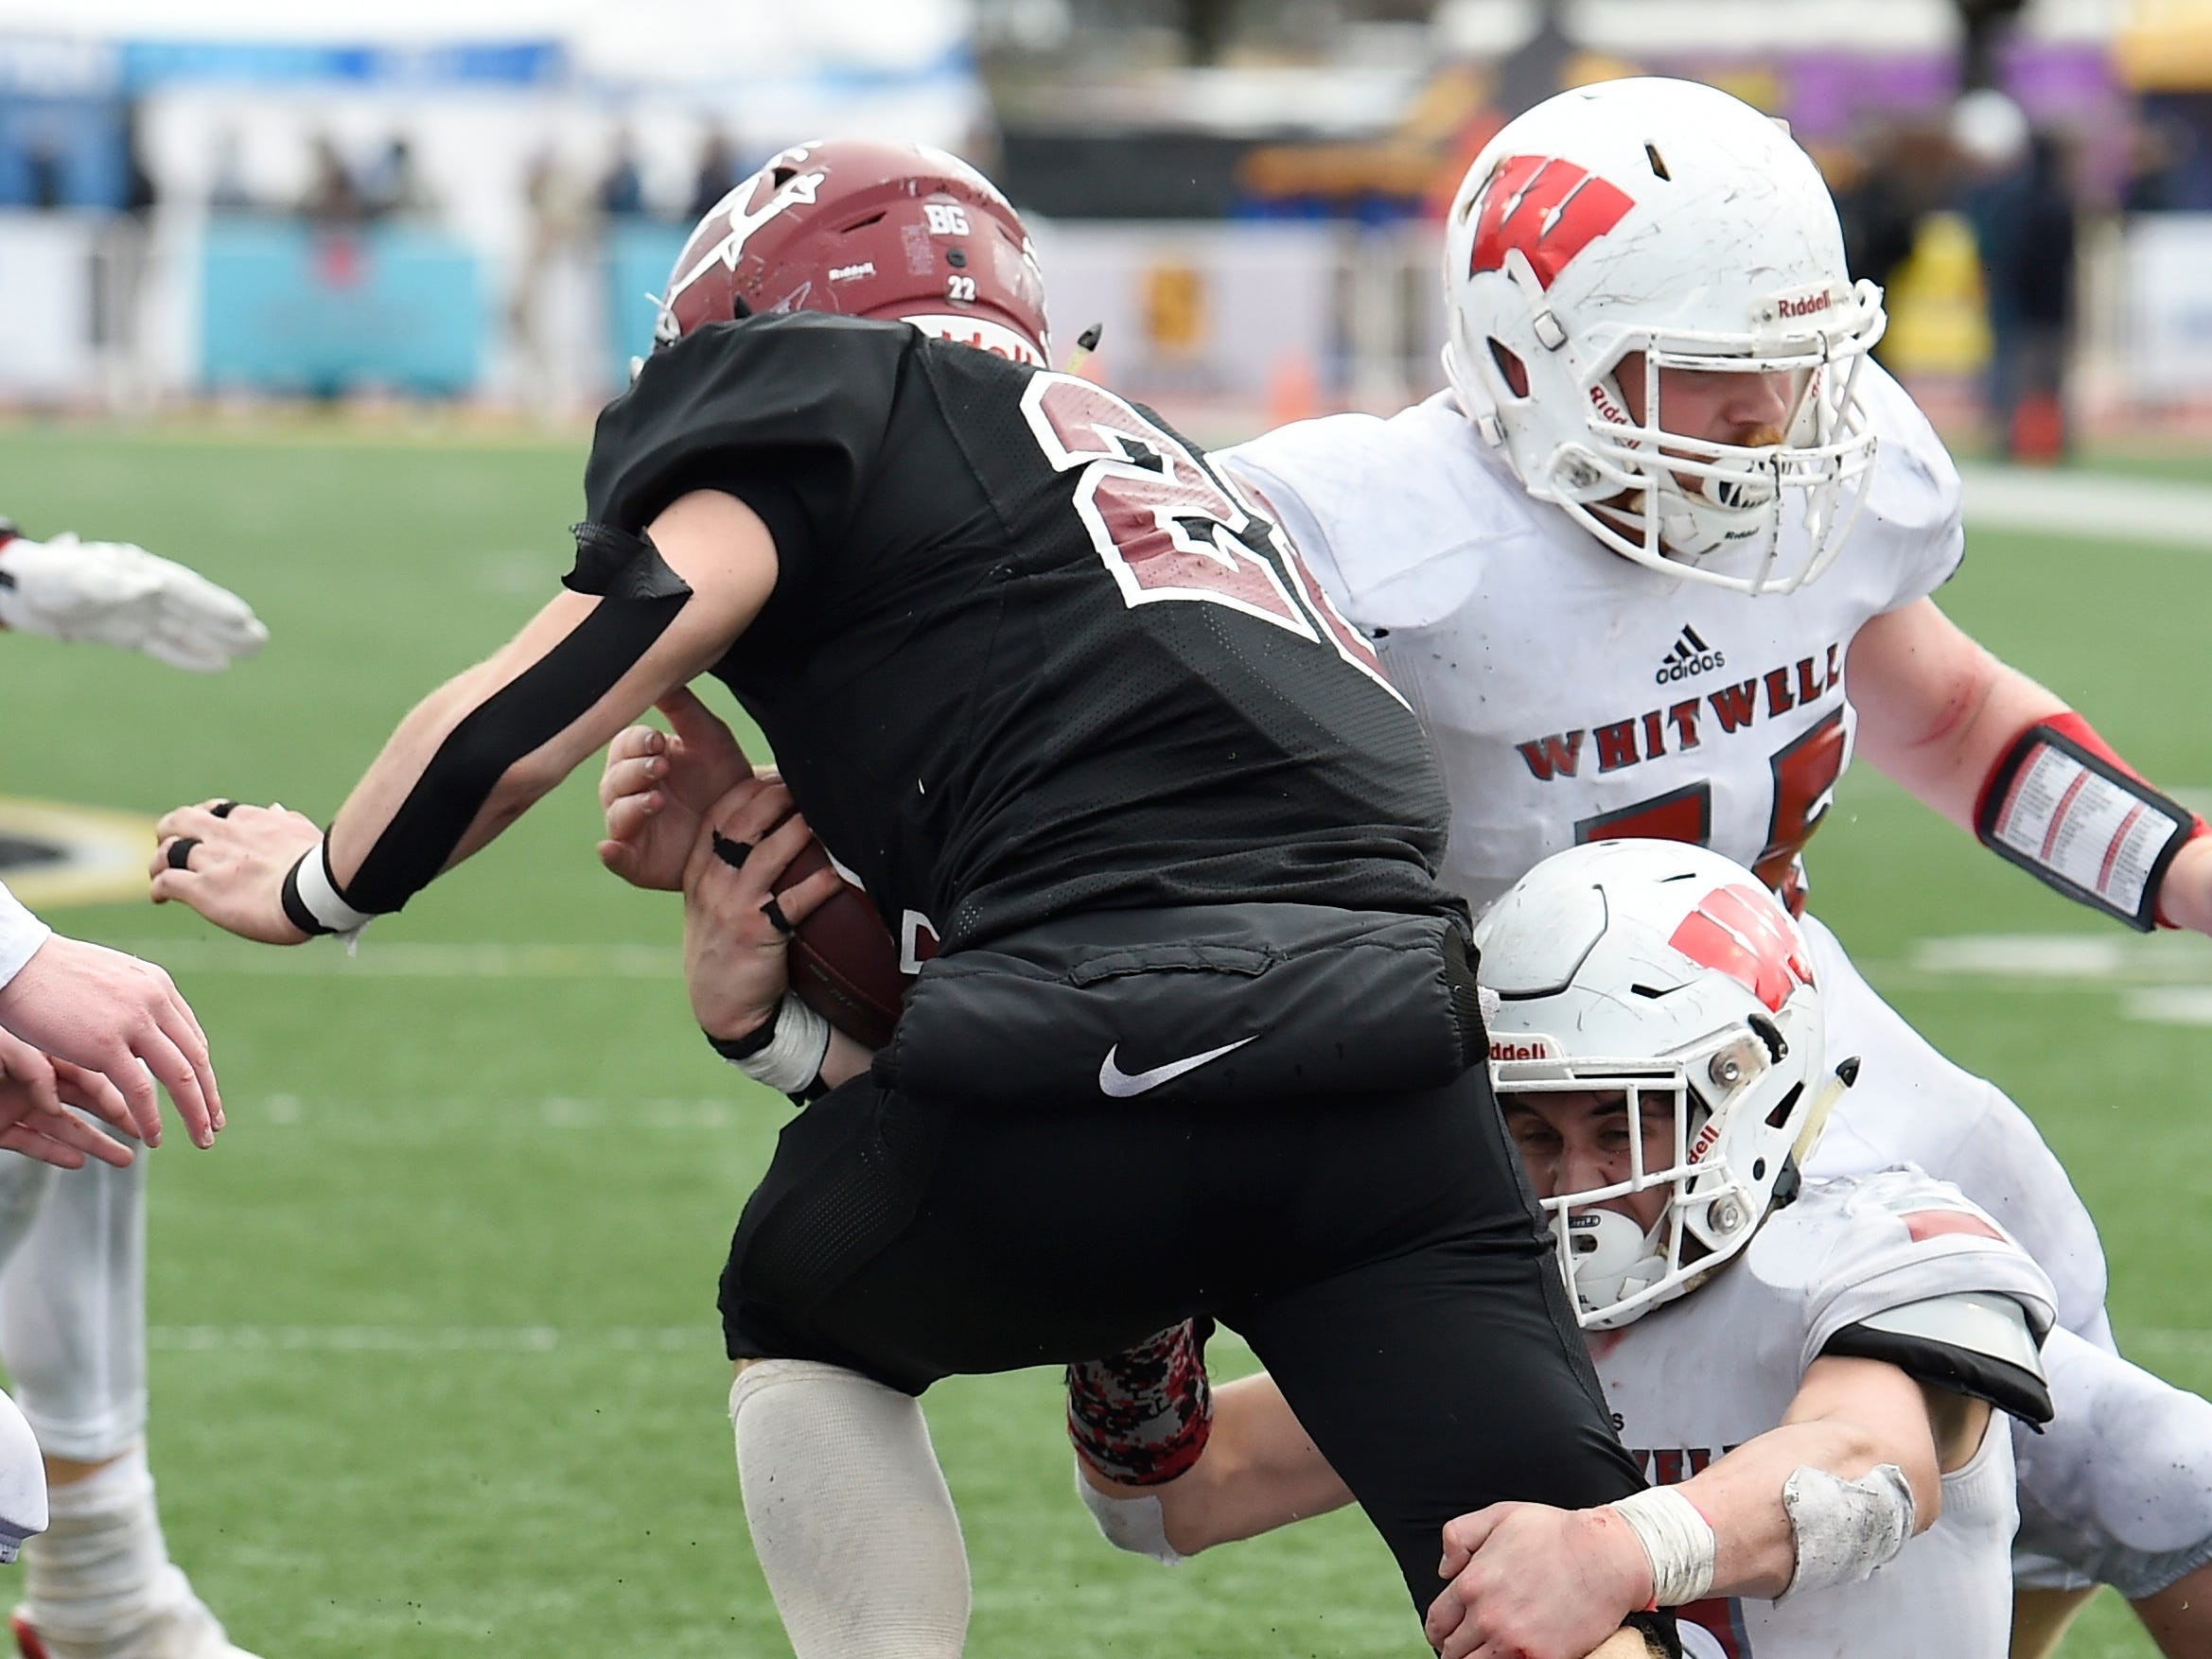 Cornersville's Eli Woodard (22) gains yards in the third quarter at the Class I-A BlueCross Bowl state championship at Tennessee Tech's Tucker Stadium in Cookeville, Tenn., on Saturday, Dec. 1, 2018.